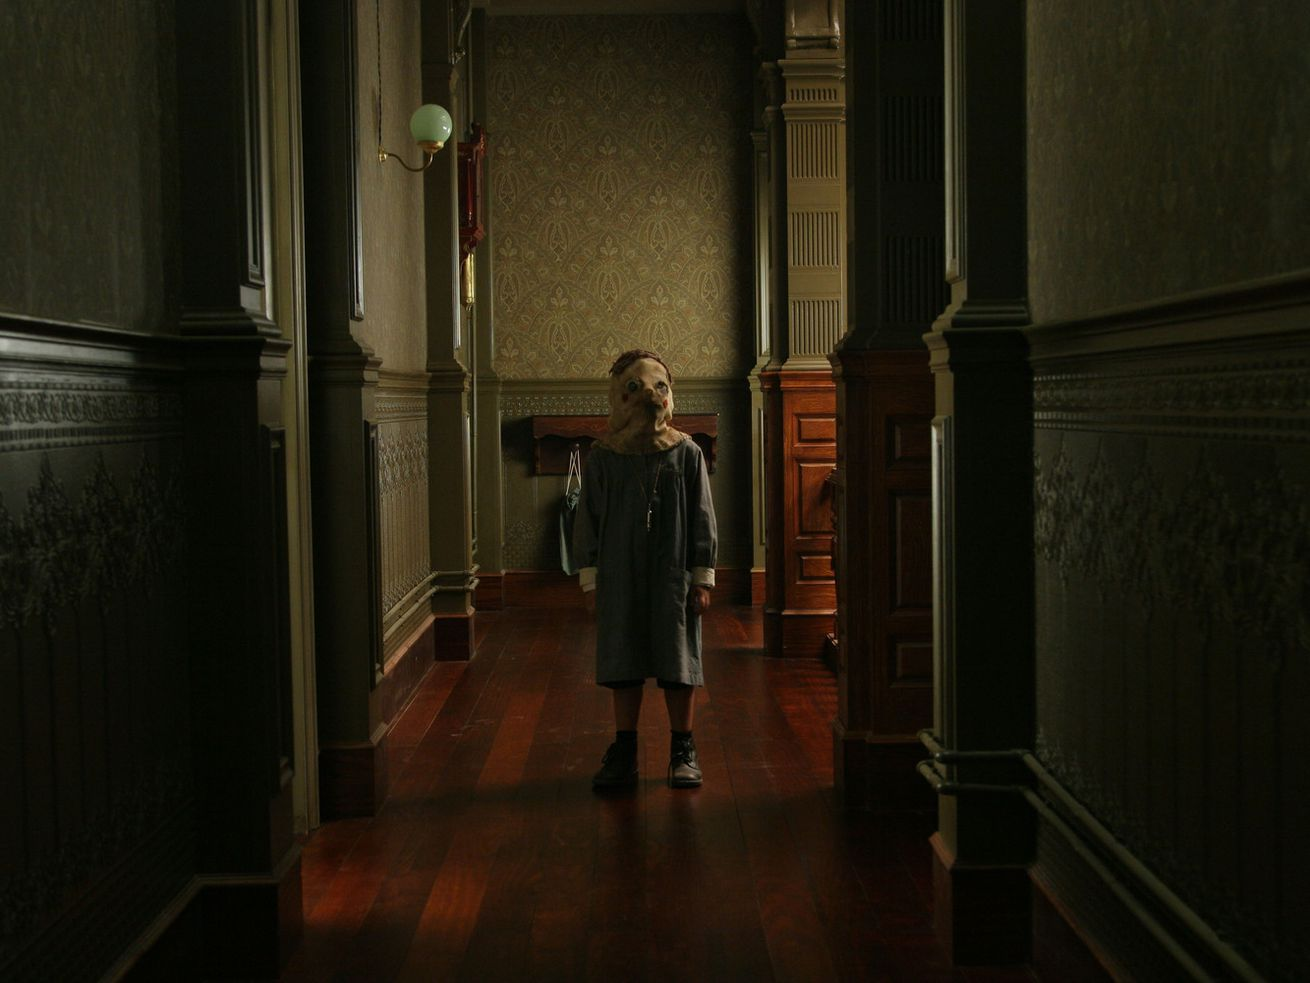 A child in a creepy mask stands in a dark hallway.